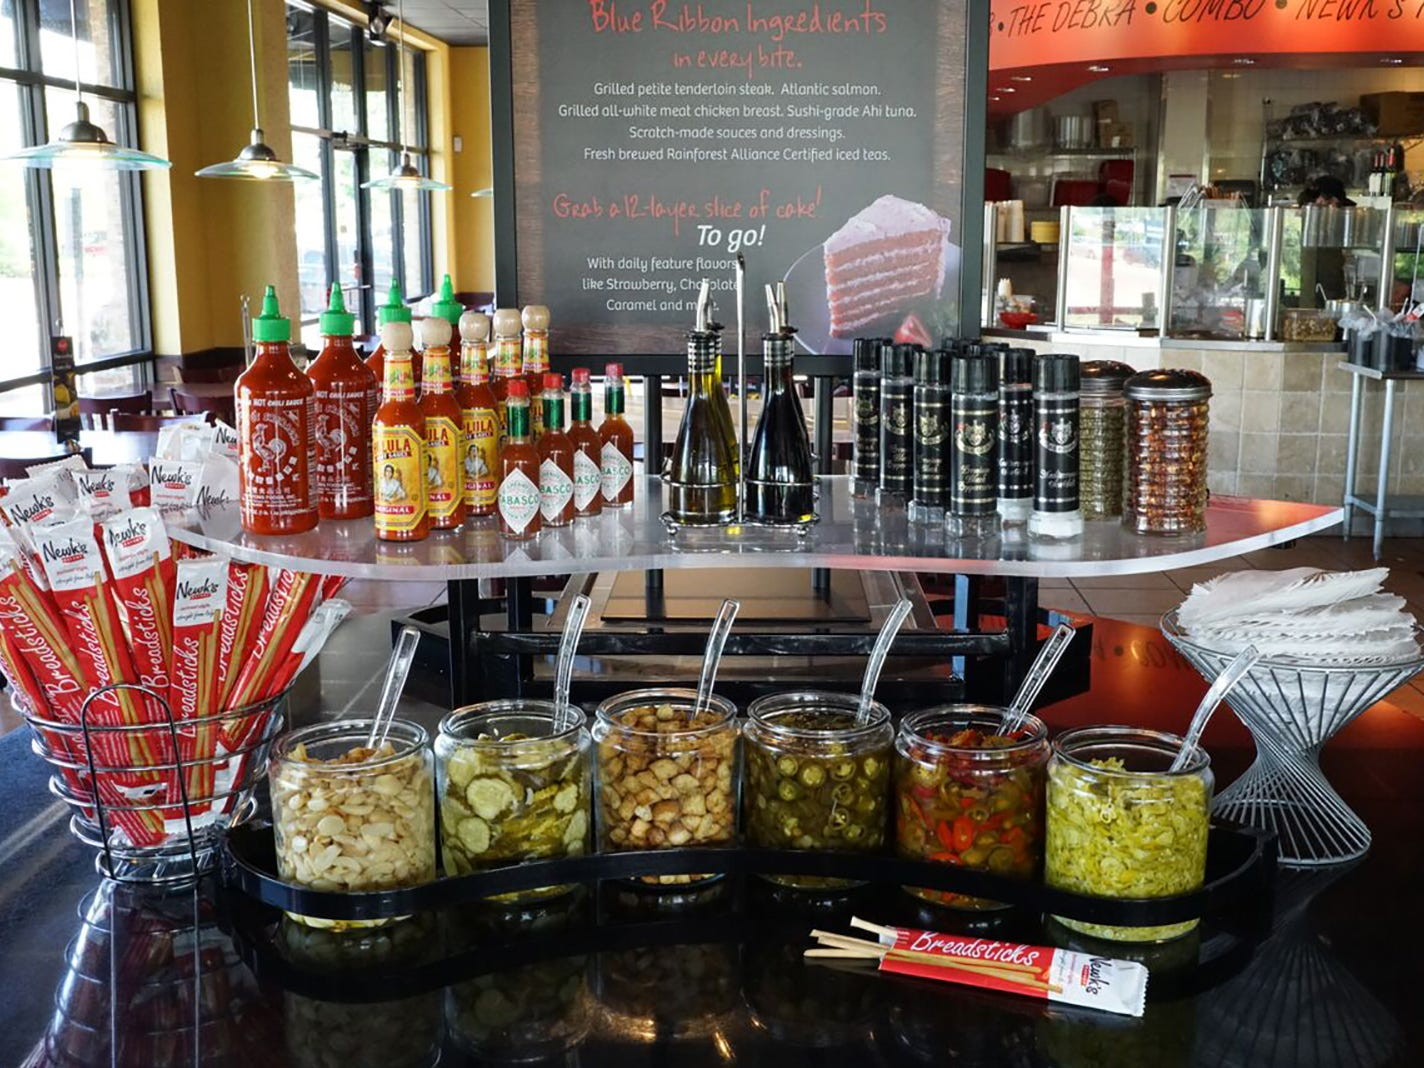 The Gourmet Roundtable at Newk's Eatery features complimentary bread and butter pickles, house-made croutons, sliced cherry peppers, capers, shredded Parmesan, freshly roasted garlic and imported breadsticks, jalapenos and pepperoncini peppers.